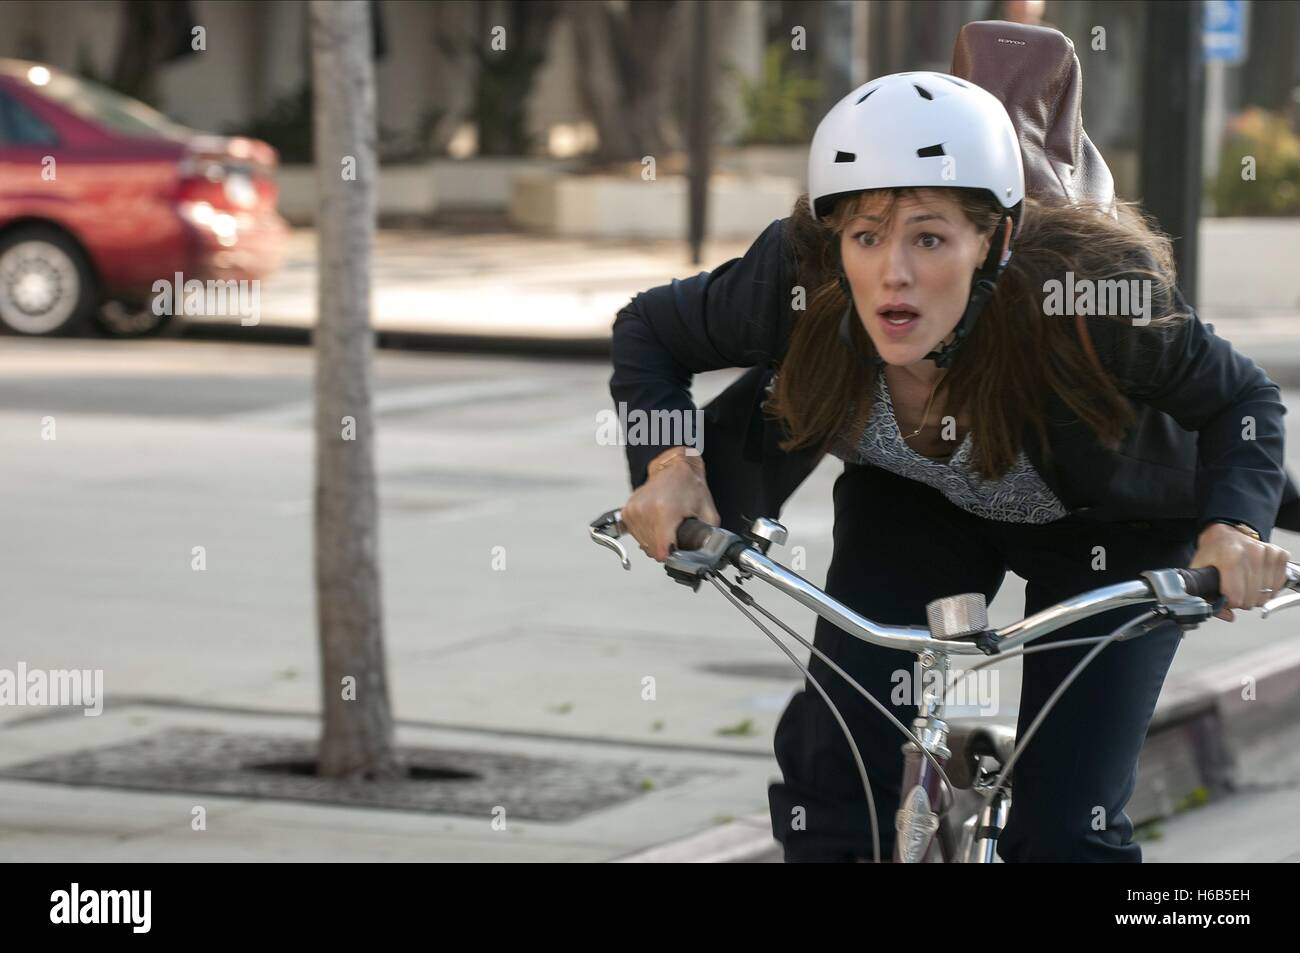 JENNIFER GARNER ALEXANDER AND THE TERRIBLE HORRIBLE NO GOOD VERY BAD DAY (2014) - Stock Image